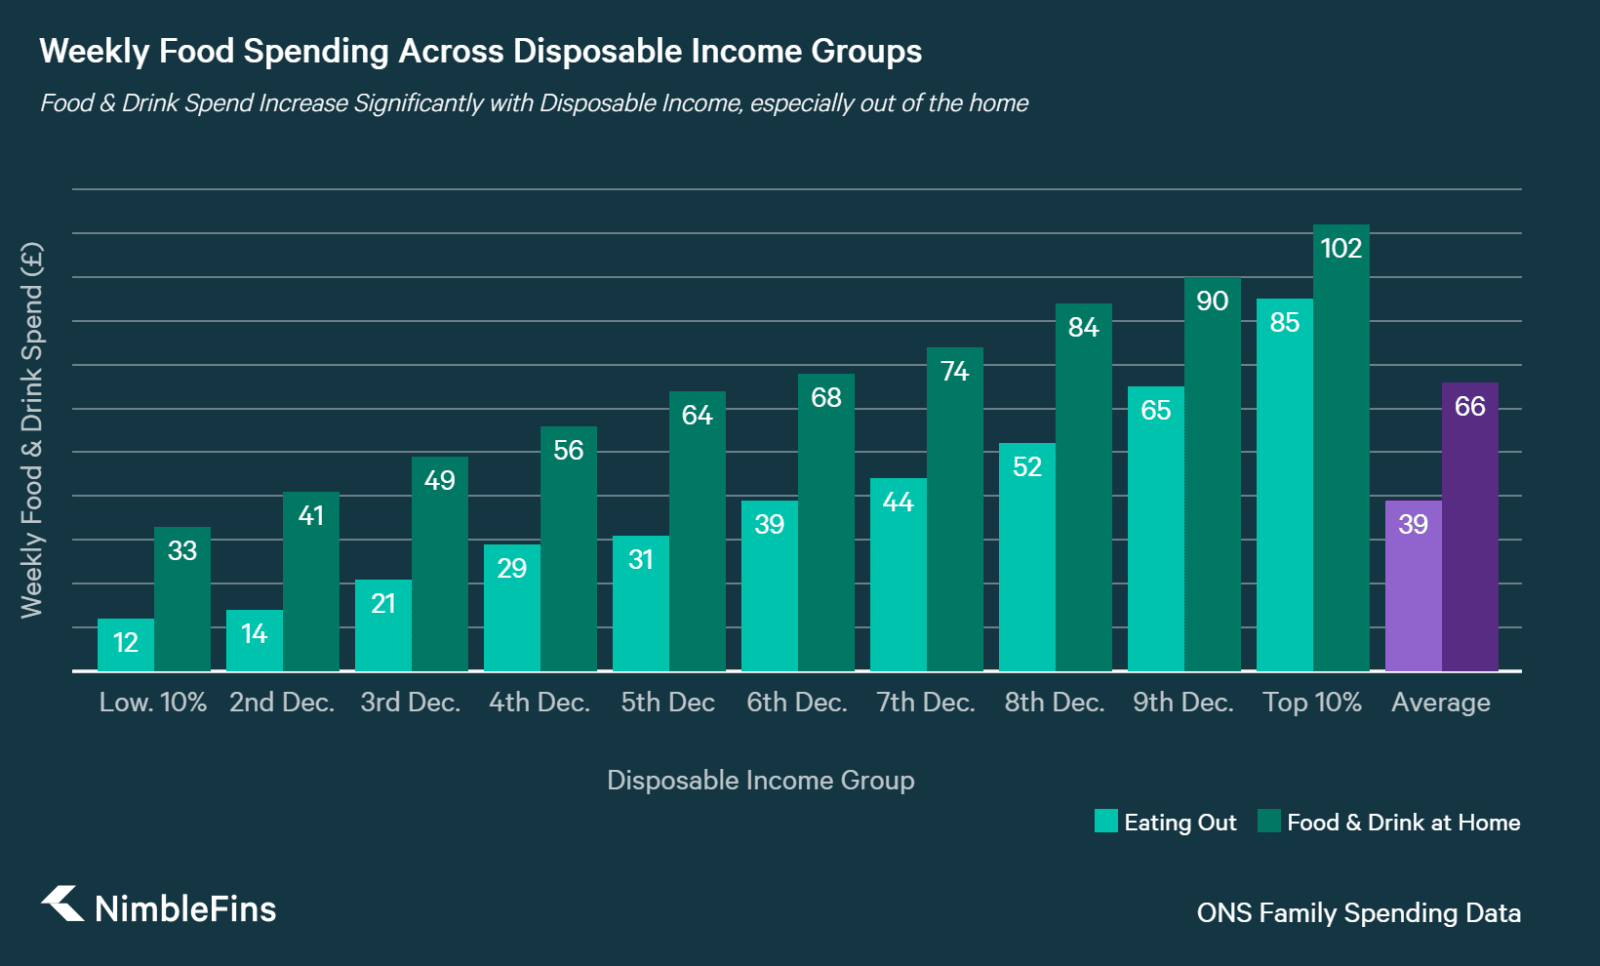 Chart showing average weekly UK food spending across disposable income decile groups, by food at home, restaurants excluding alcohol, and restaurants including alcohol